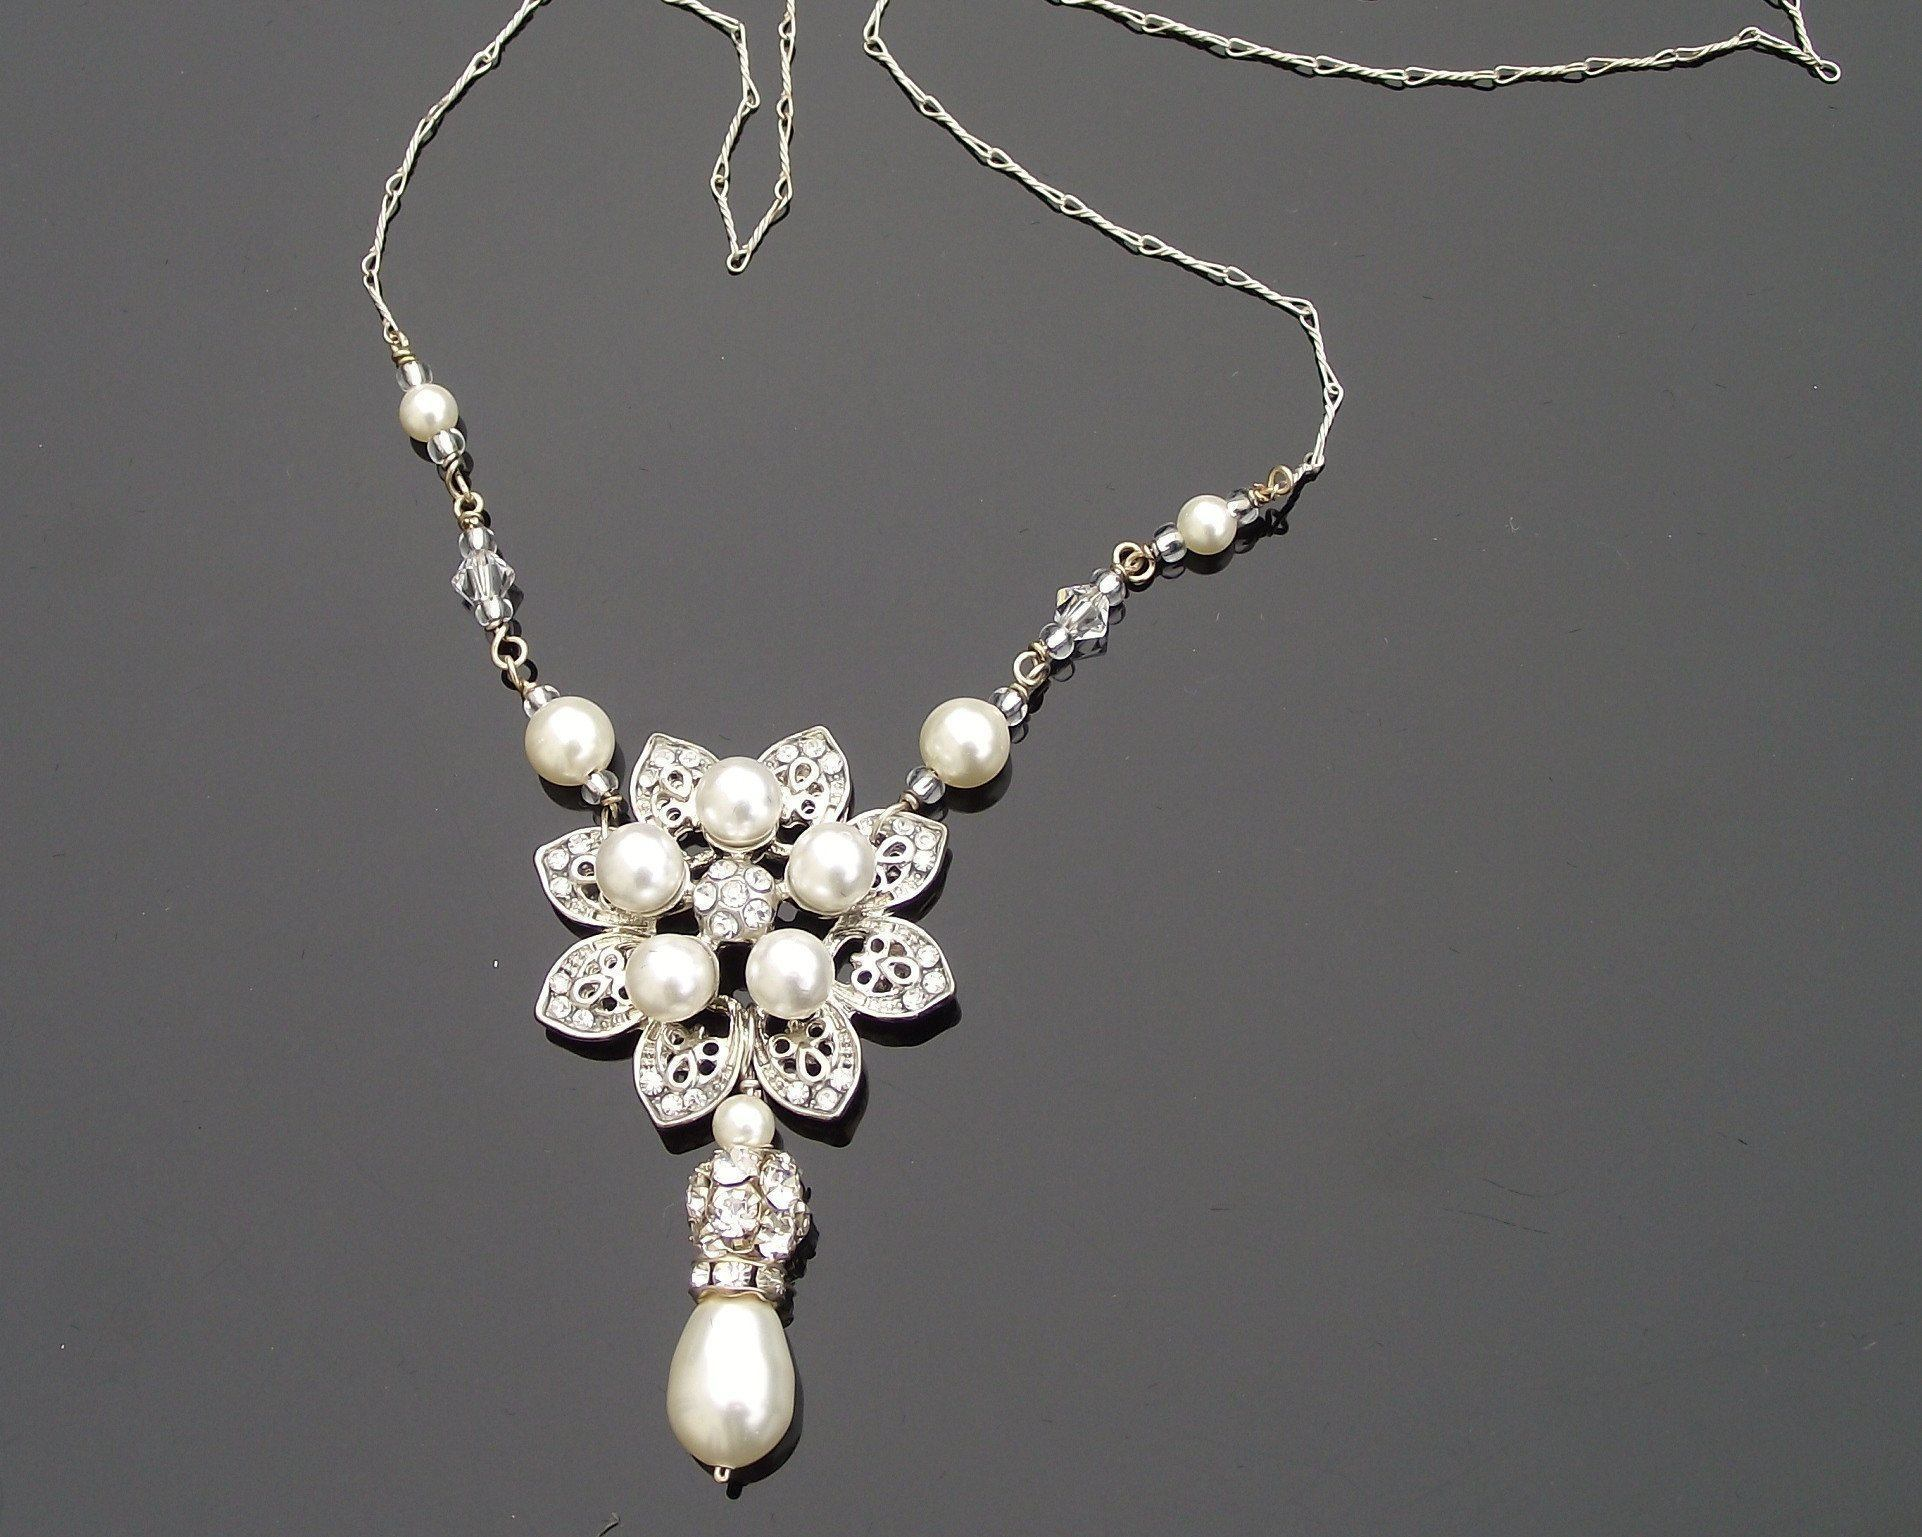 Bridesmaids Pendants - Floral Rhinestone And Ivory Pearl Pendant, Alyson